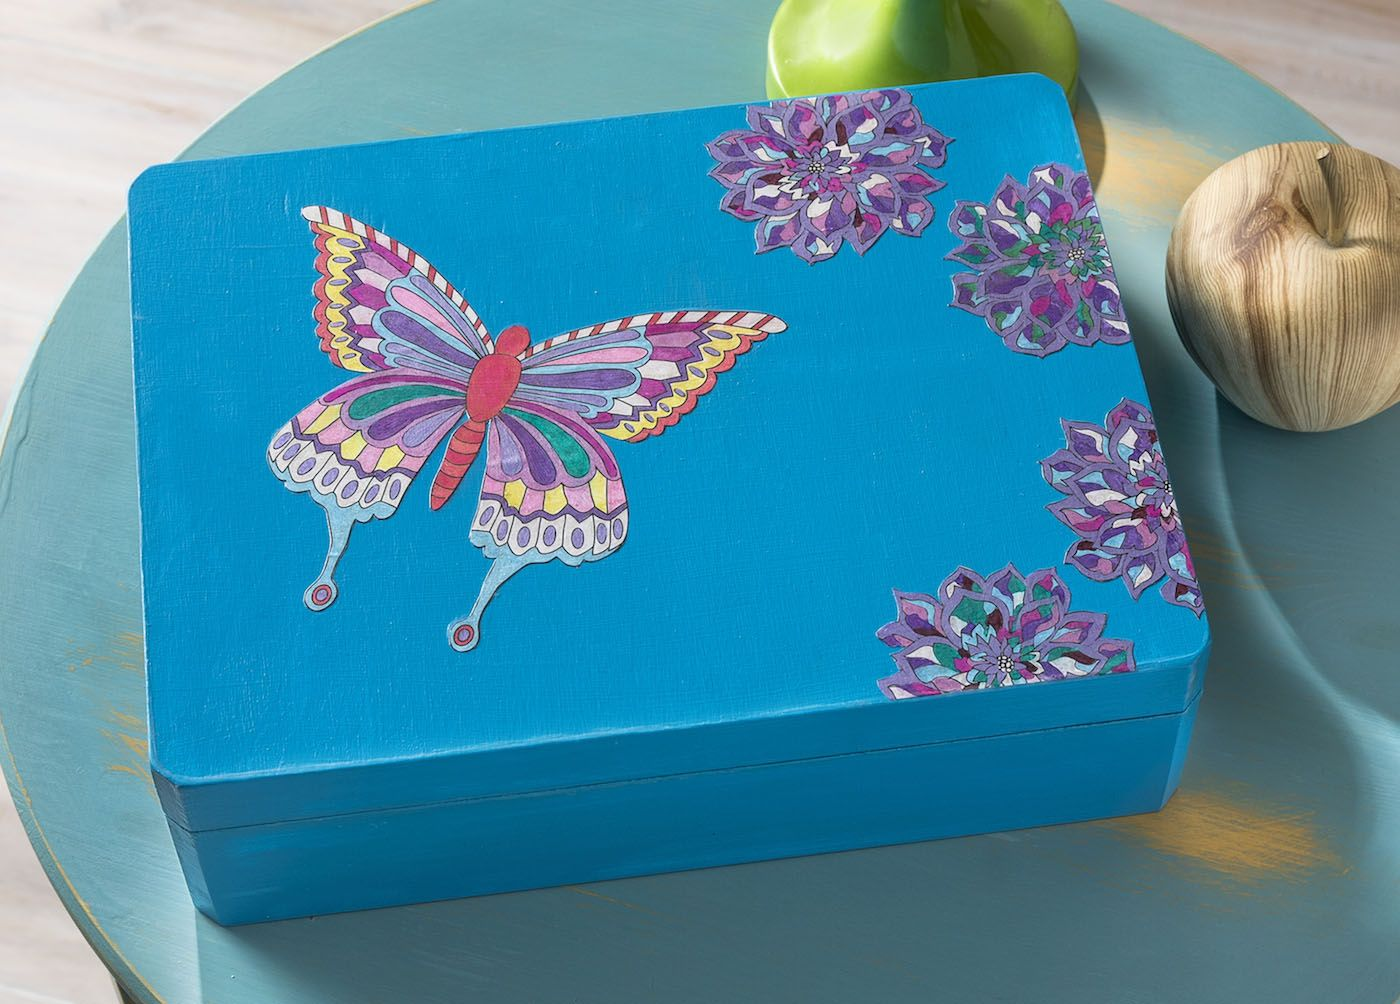 How To Decorate Boxes Decorate A Box With Adult Color Pages  Box Craft And Gift